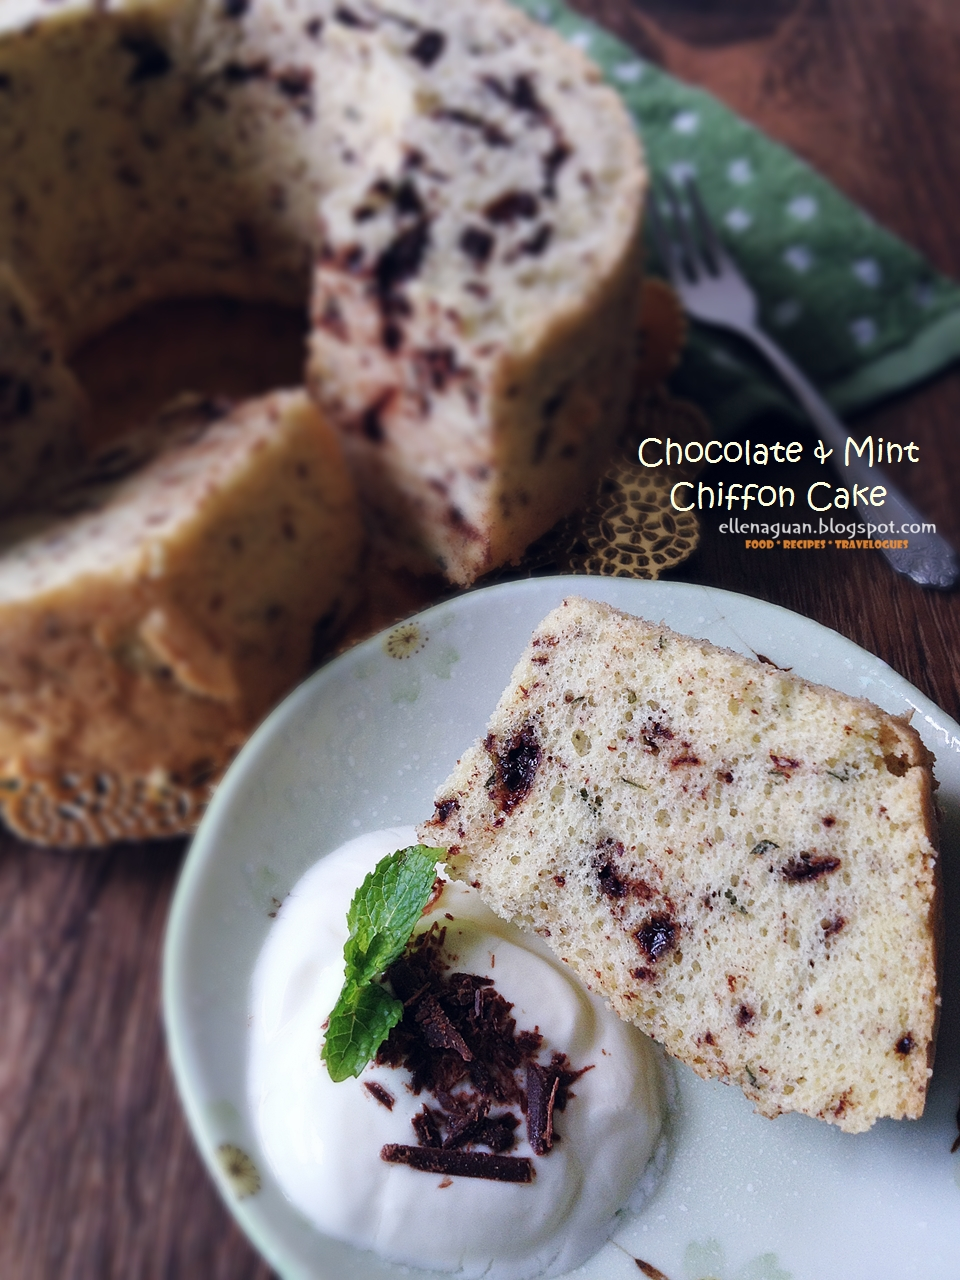 Cuisine paradise singapore food blog recipes reviews and wordless wednesday chocolate and mint chiffon cake recipe forumfinder Gallery